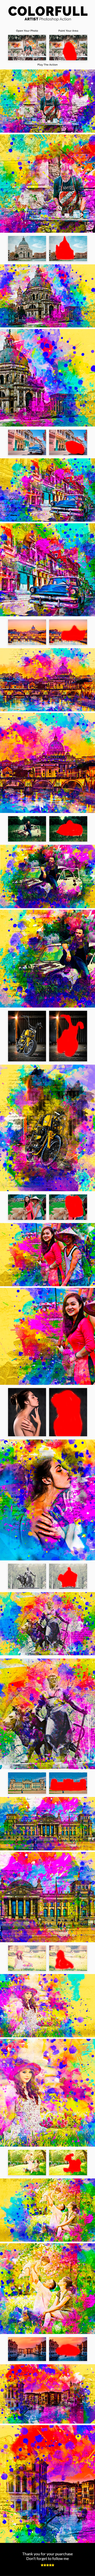 GraphicRiver ColorFull Artist Photoshop Action 20485419